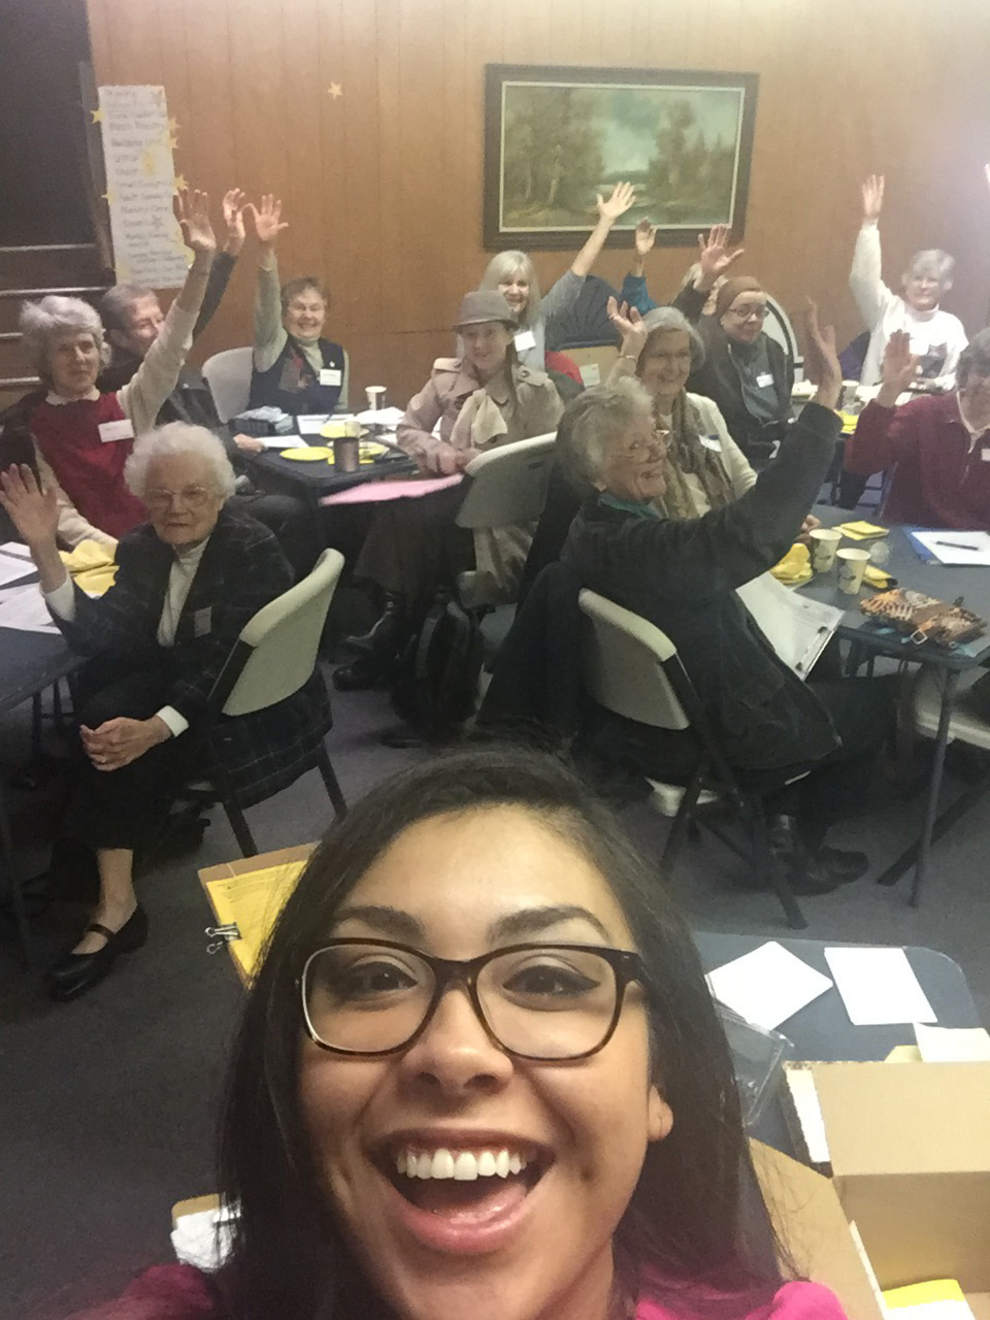 Reyna Lopez from A Better Oregon takes a selfie after speaking to the Church Women United chapter on the subject of rasing corporate income taxes to support social programs. The group regularly hosts speakers as part of its research on social issues.